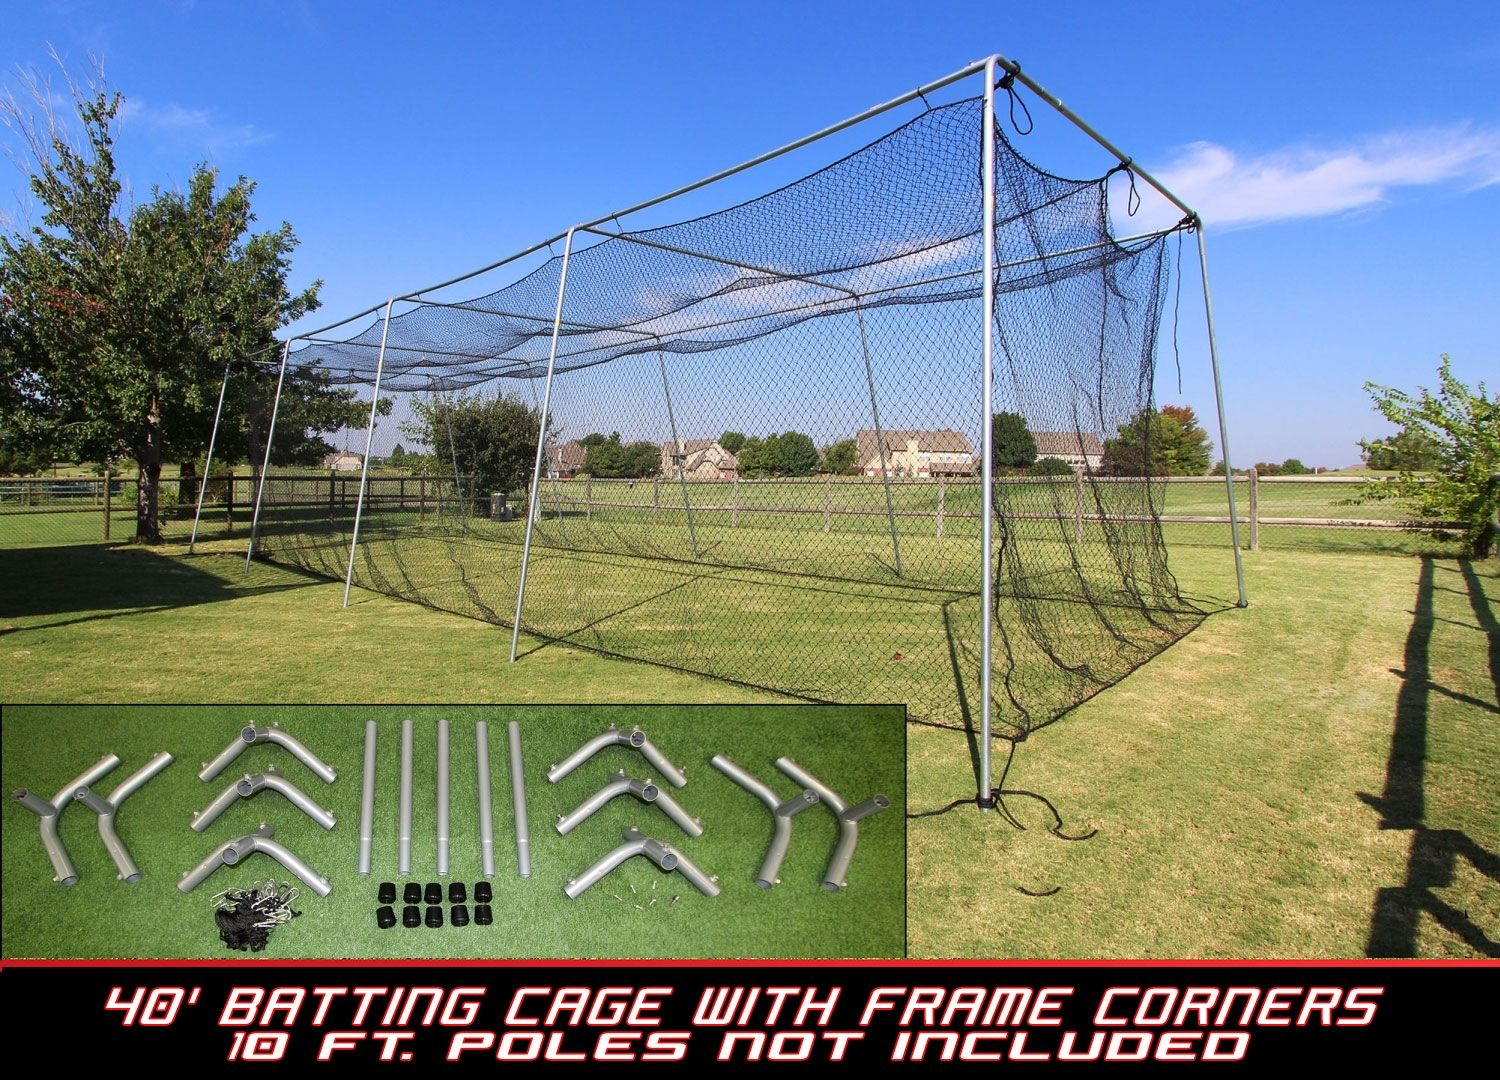 Pin By Best Sports Direct On Batting Cage Nets Batting Cages Batting Cage Net Batting Cage Backyard